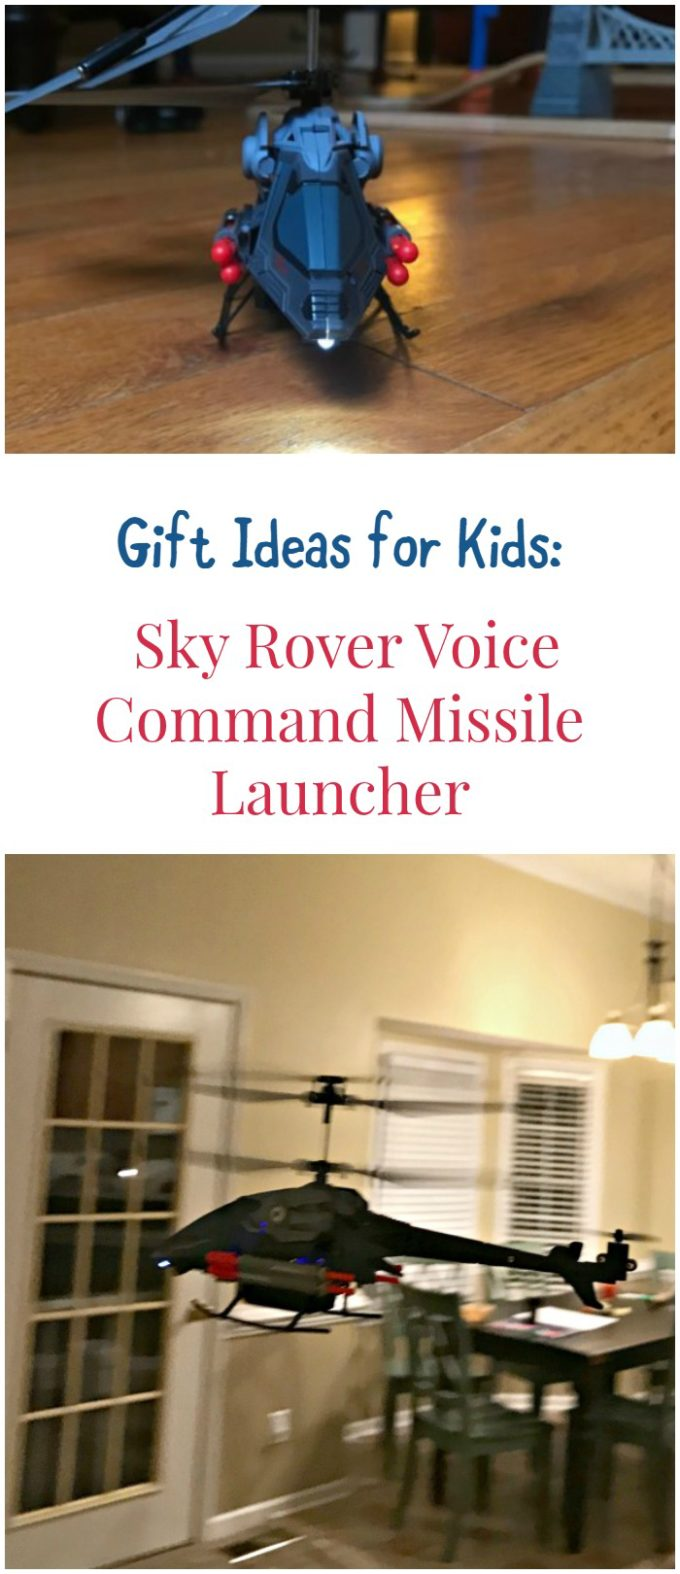 Gift Idea for Kids: Sky Rover Voice Command Missile Launcher by Auldey Toys